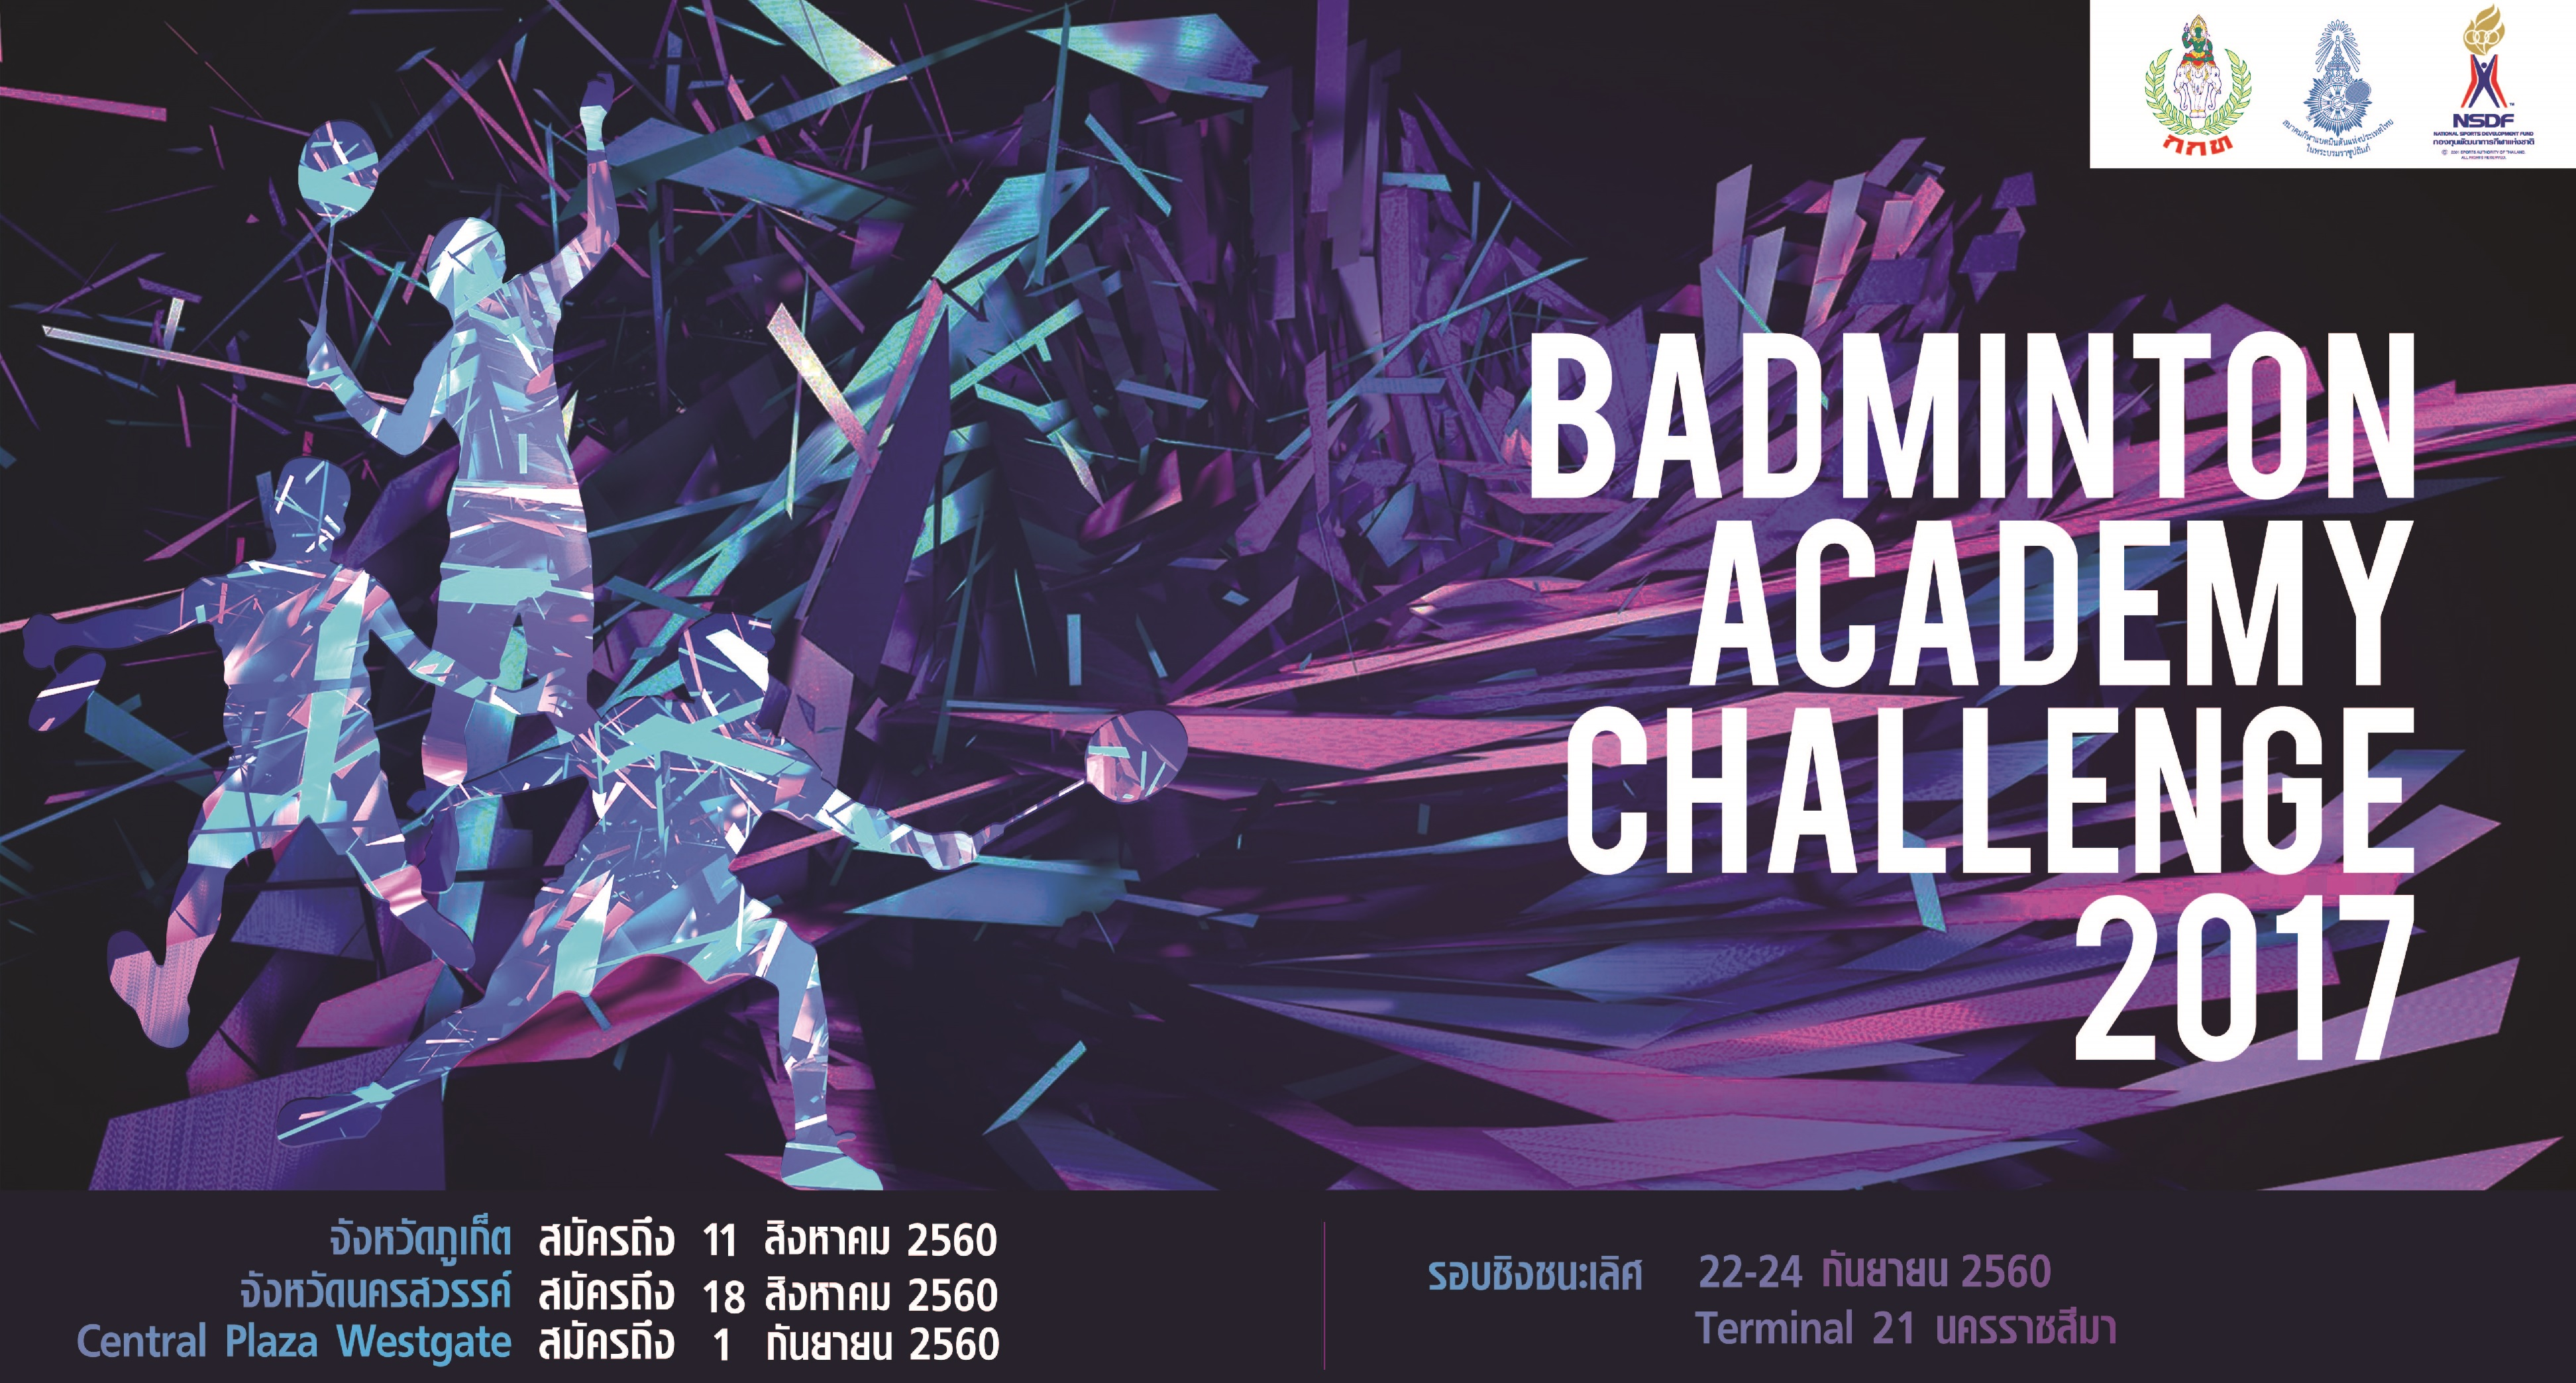 Badminton Academy Challenge (U23 Thai League)